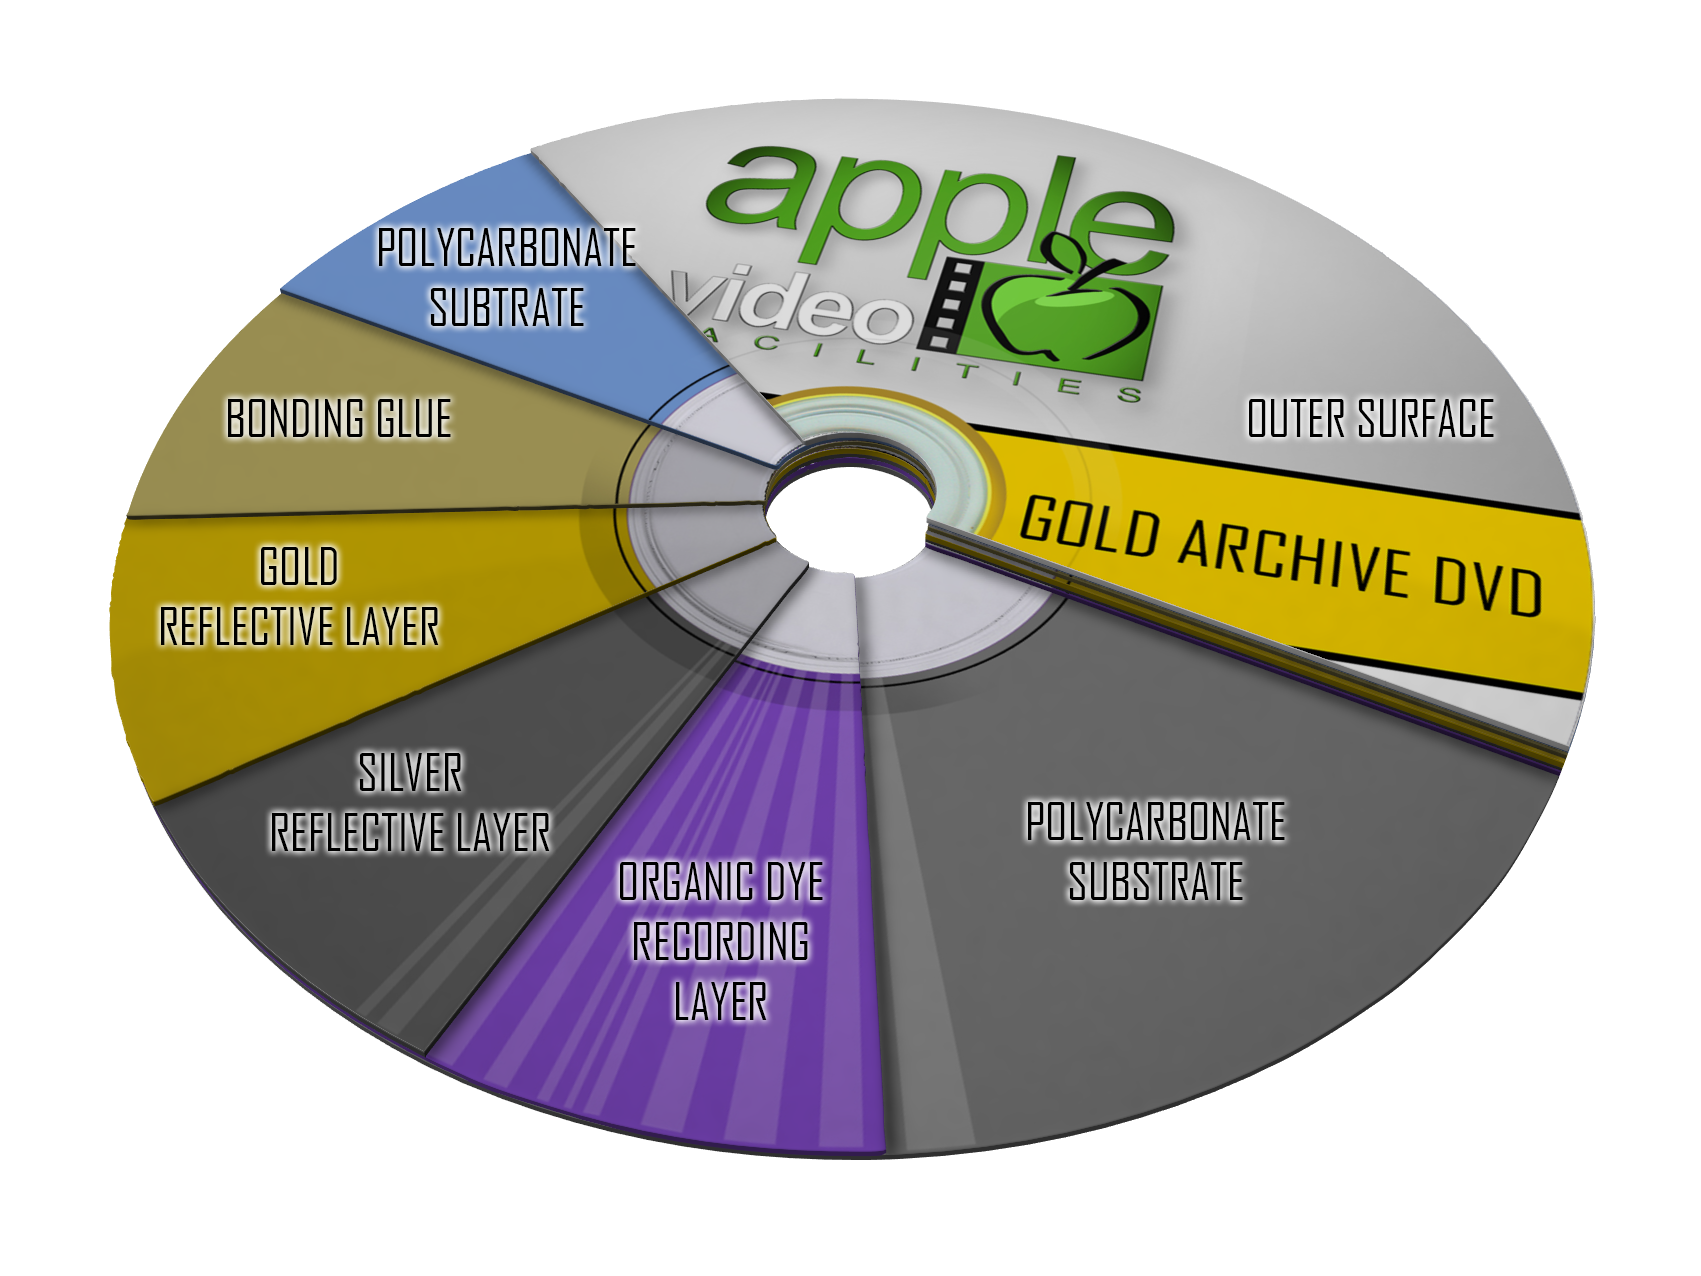 Gold Archive Disc Cross Section │ Apple Video Facilities